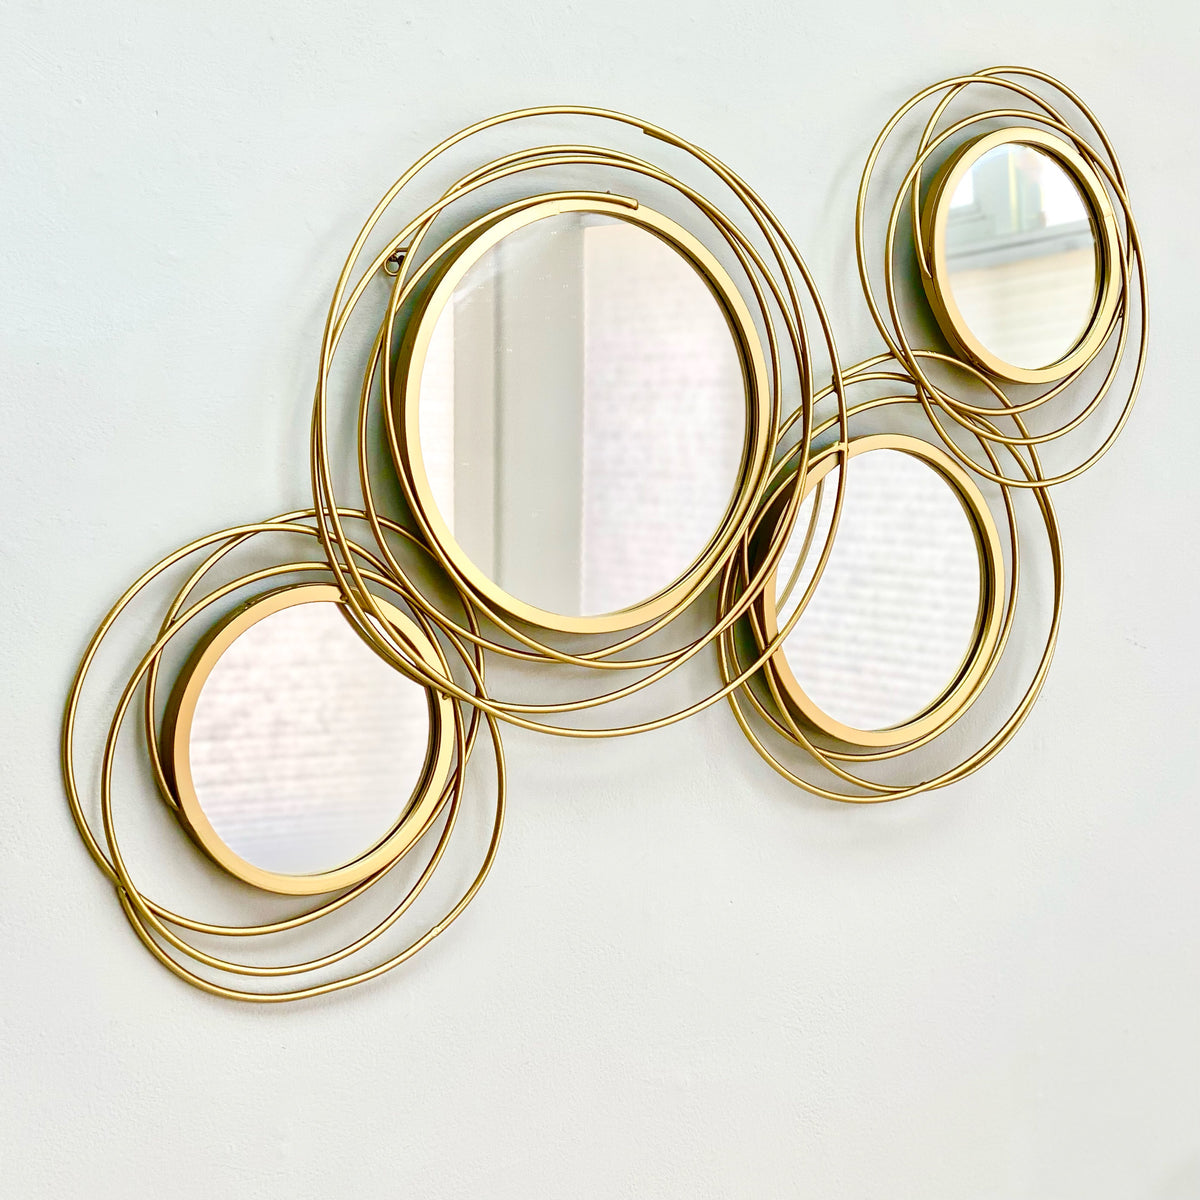 Gold Spiral Mirror Wall Decor